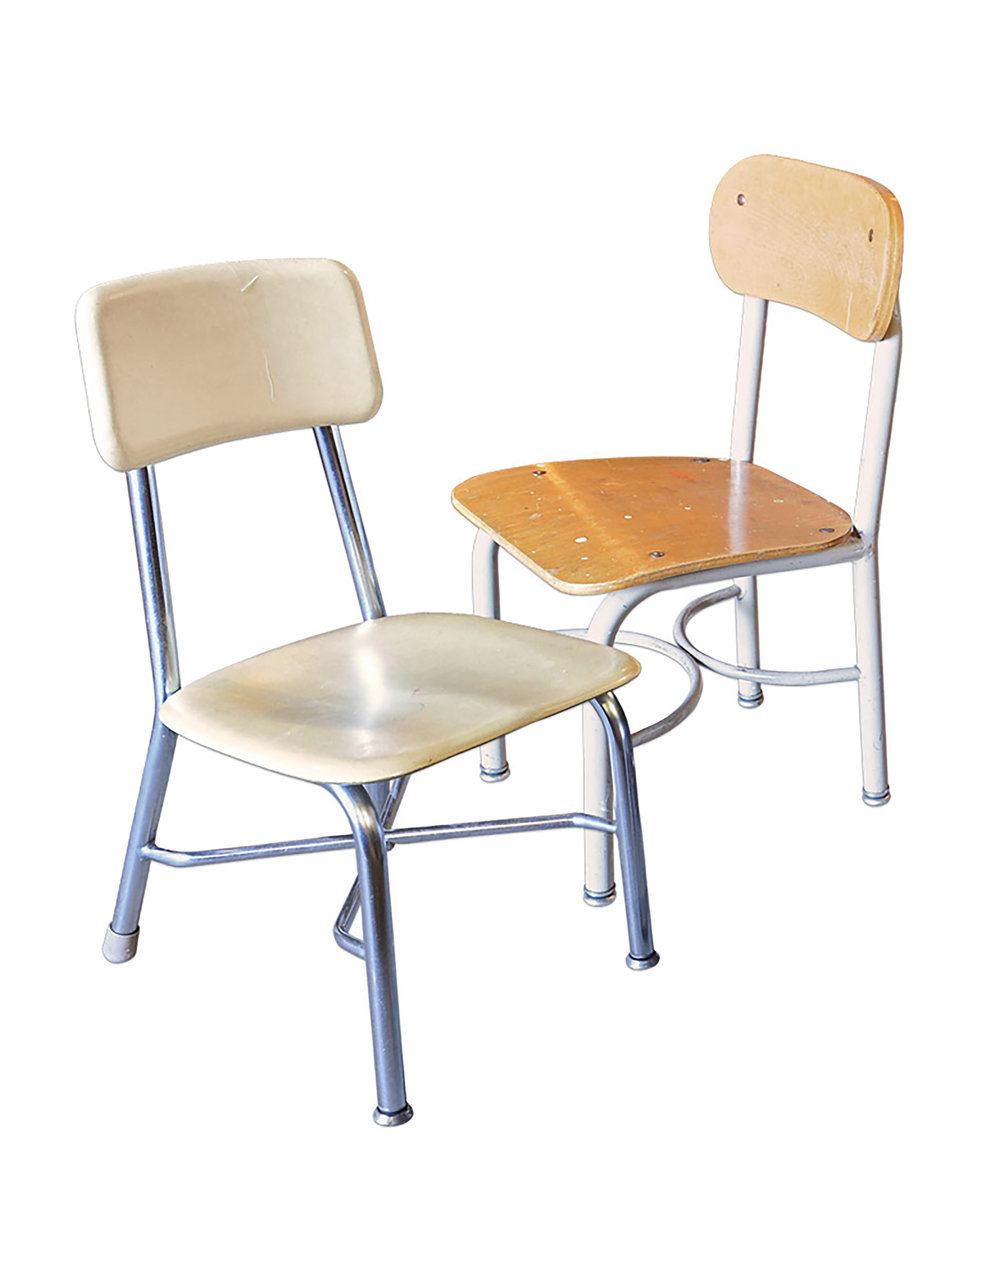 Childrenu0027s School Desk Chairs   Quantity Available U2014 ARCHITECTURAL ANTIQUES